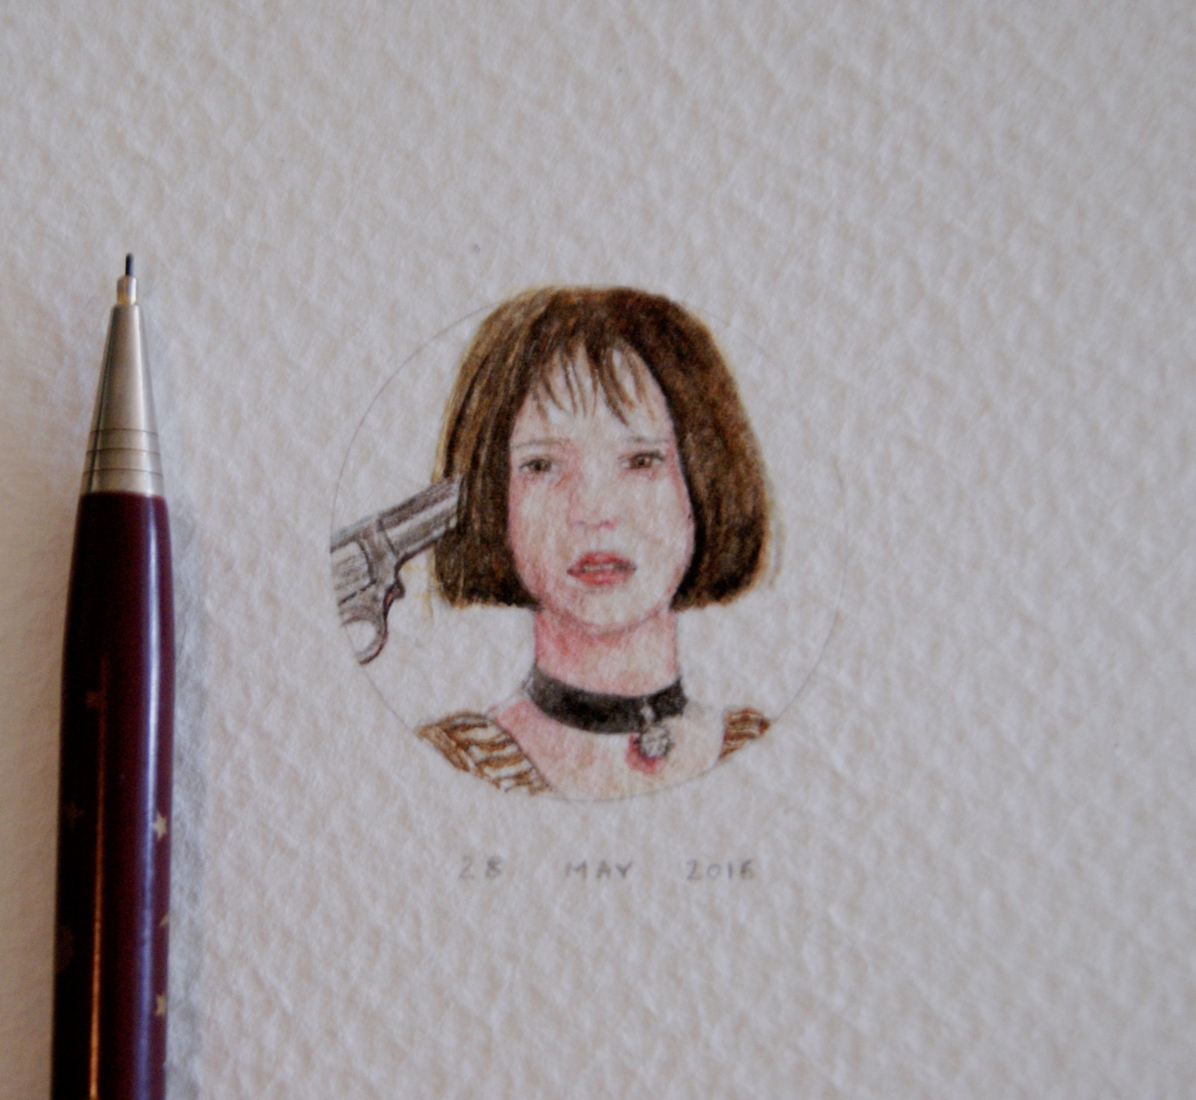 05-Mathilda-Leon-Guillermo-Méndez-Mr-Luigi-Miniature-Drawings-and-Watercolor-Paintings-www-designstack-co